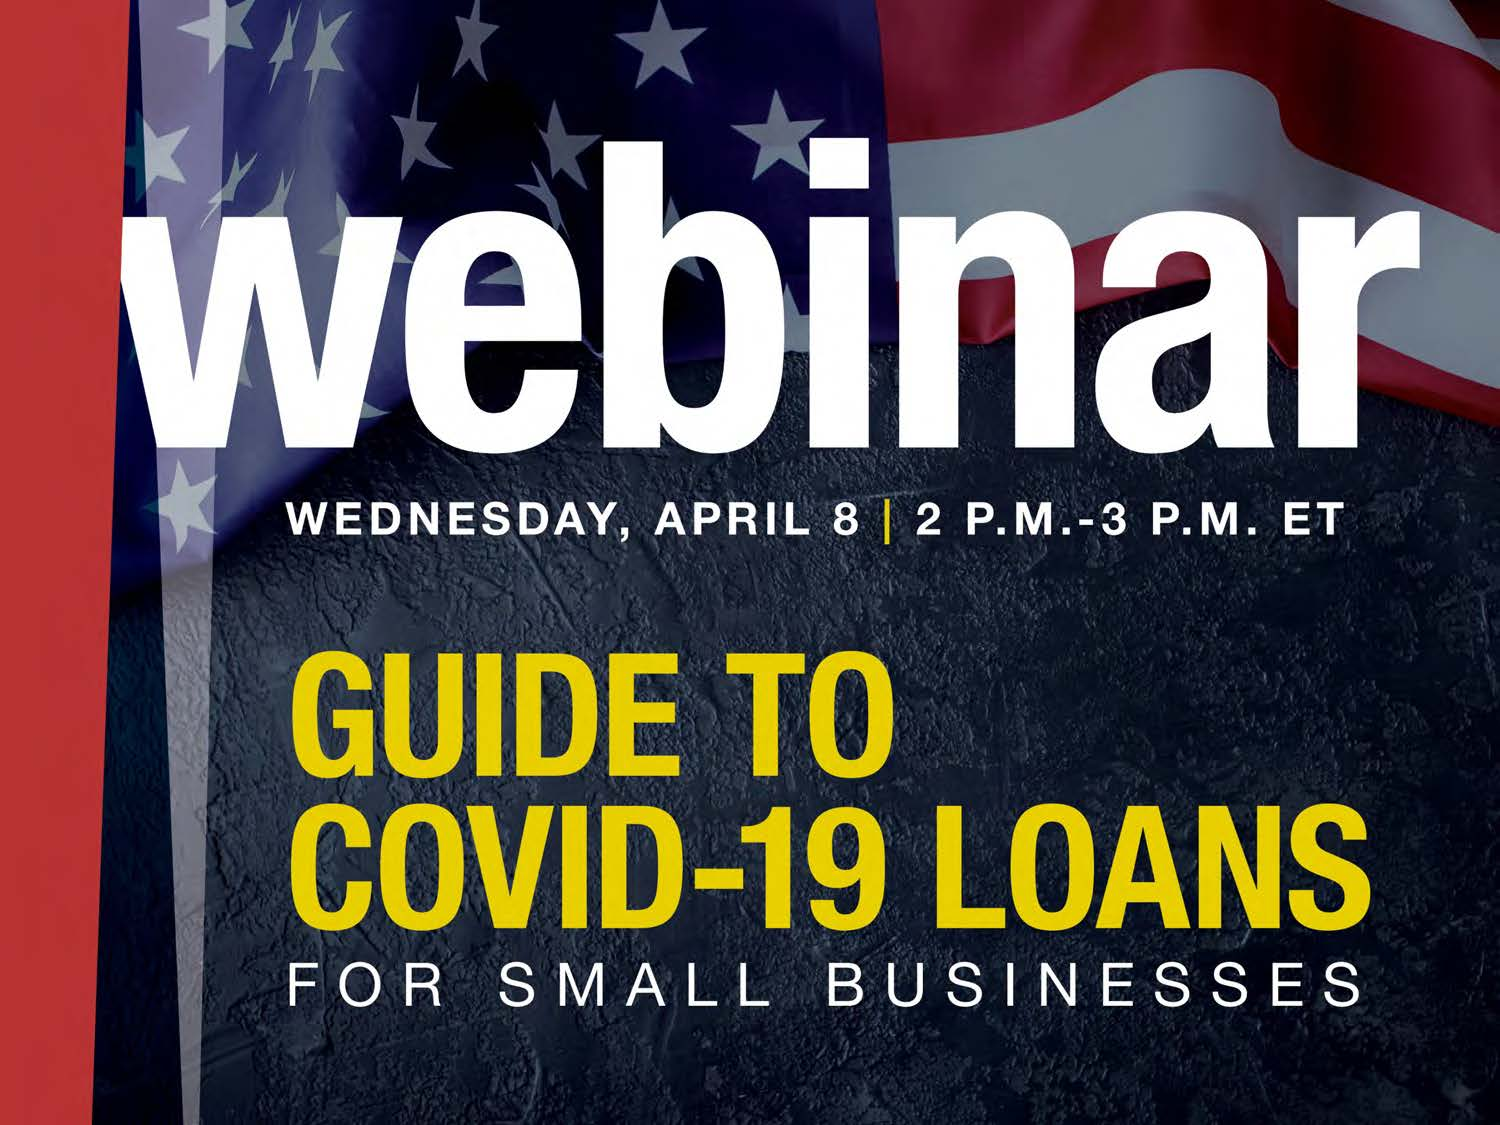 Guide to COVID-19 Loans for Small Businesses